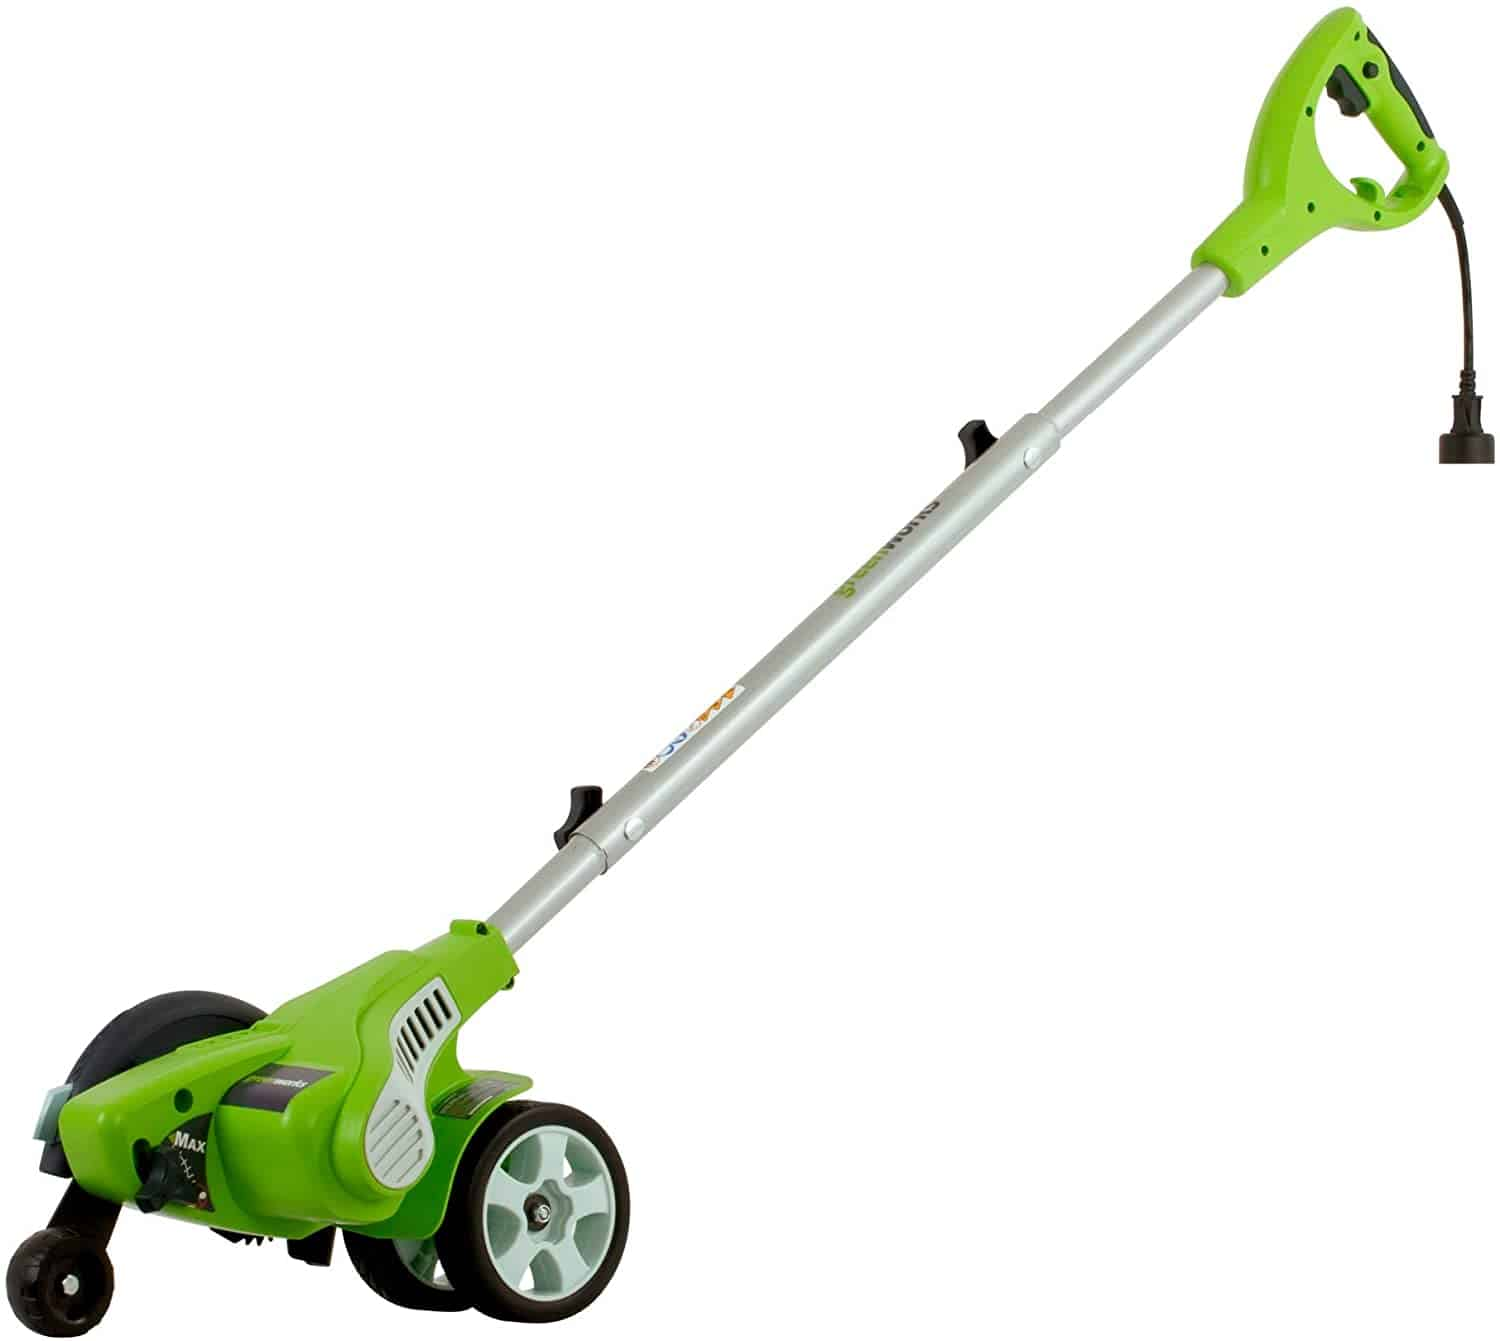 greenworks electric lawn edger